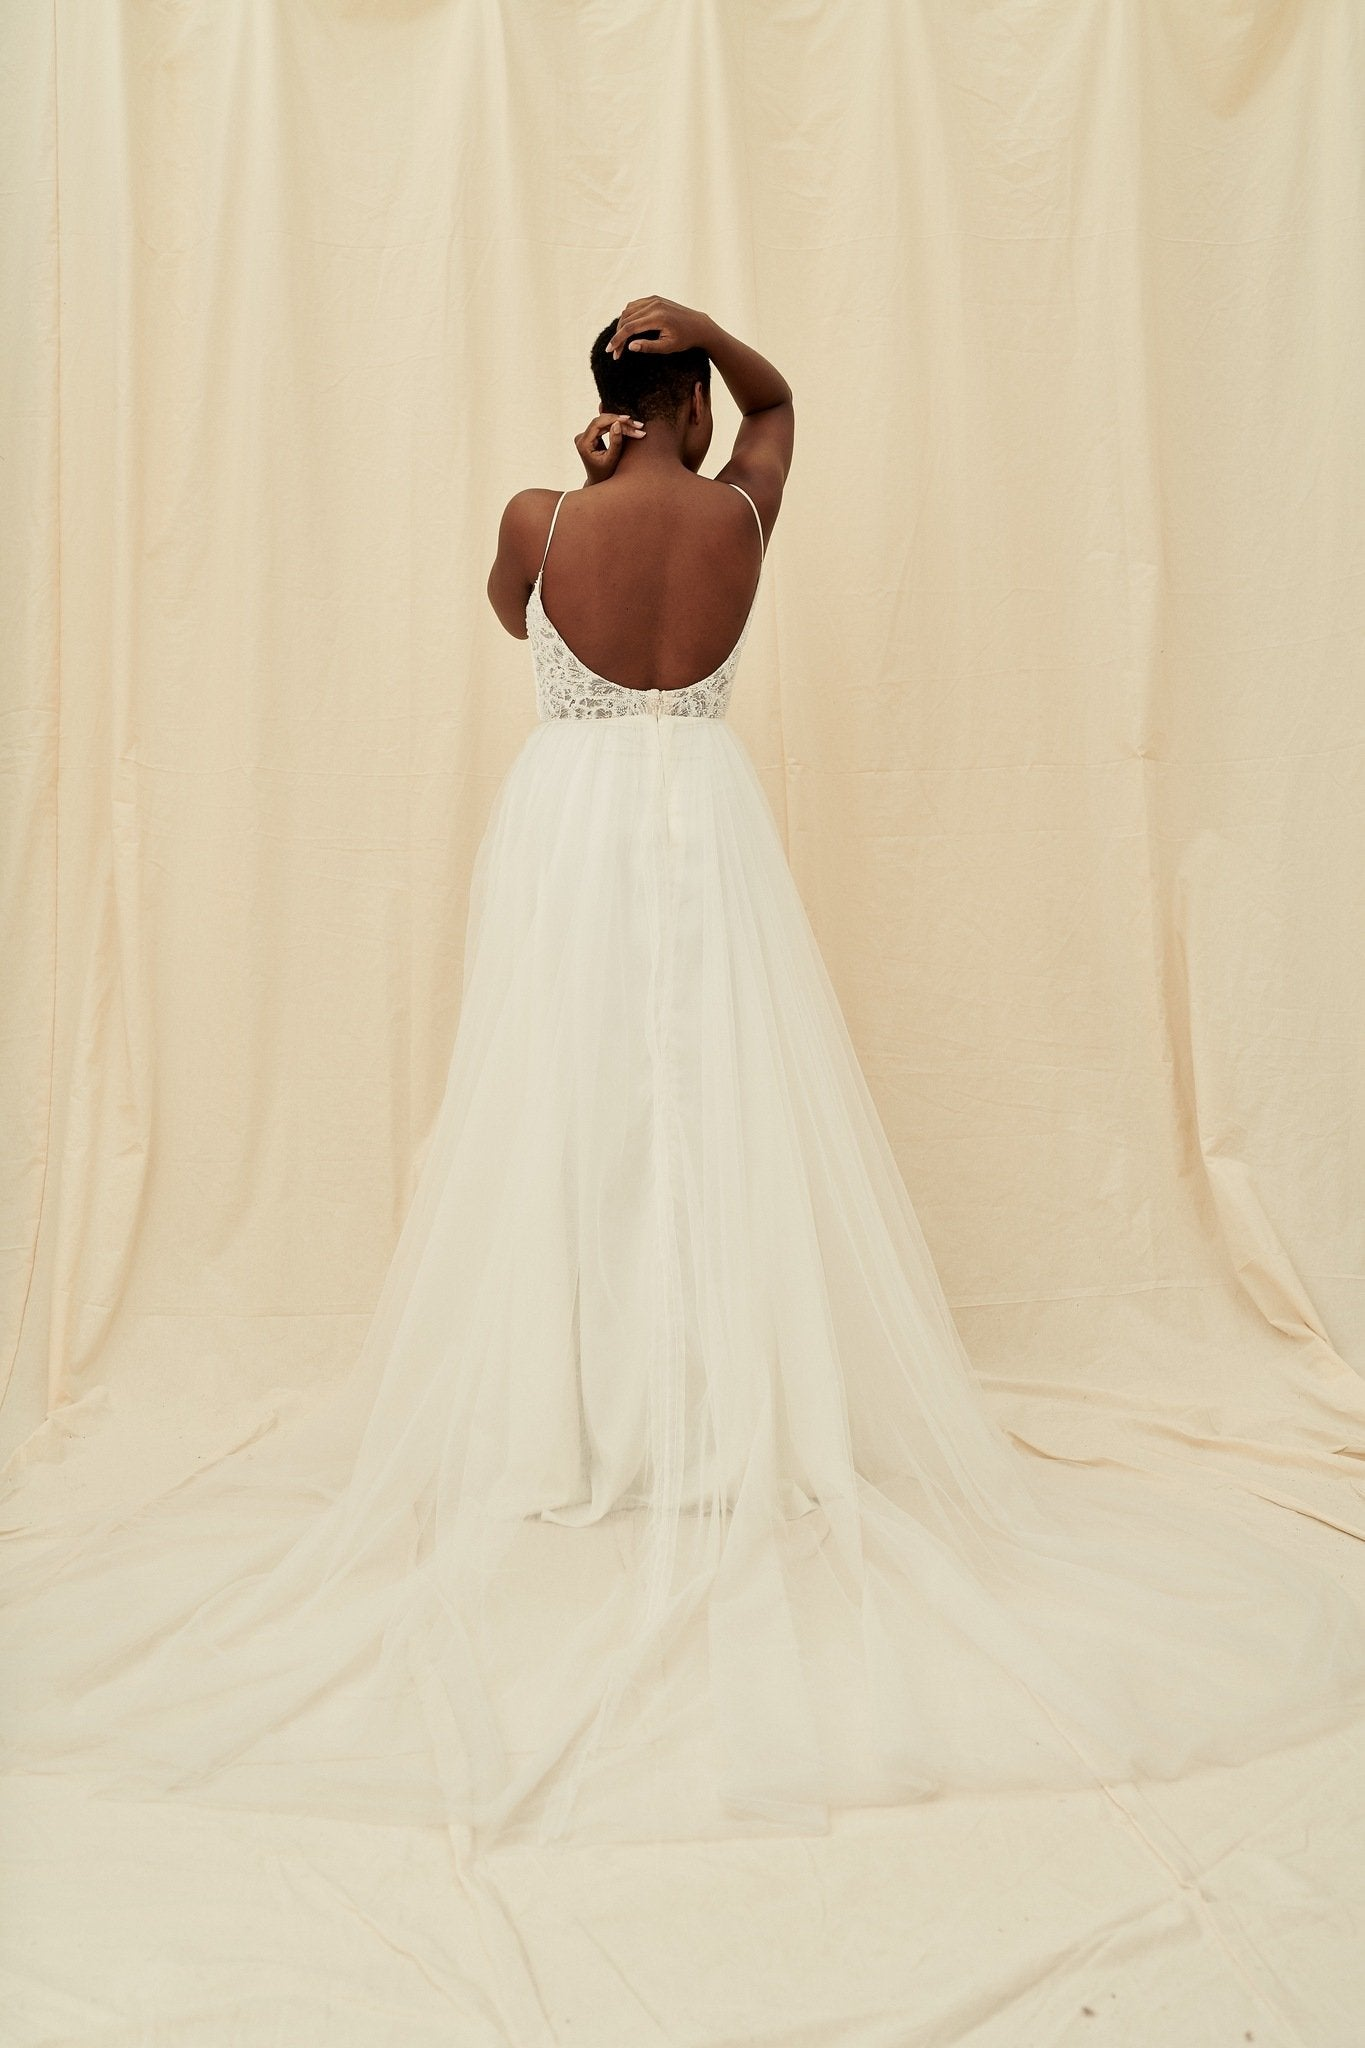 A scoop back dress with a plunging beaded bodice and a princess tulle skirt by Truvelle